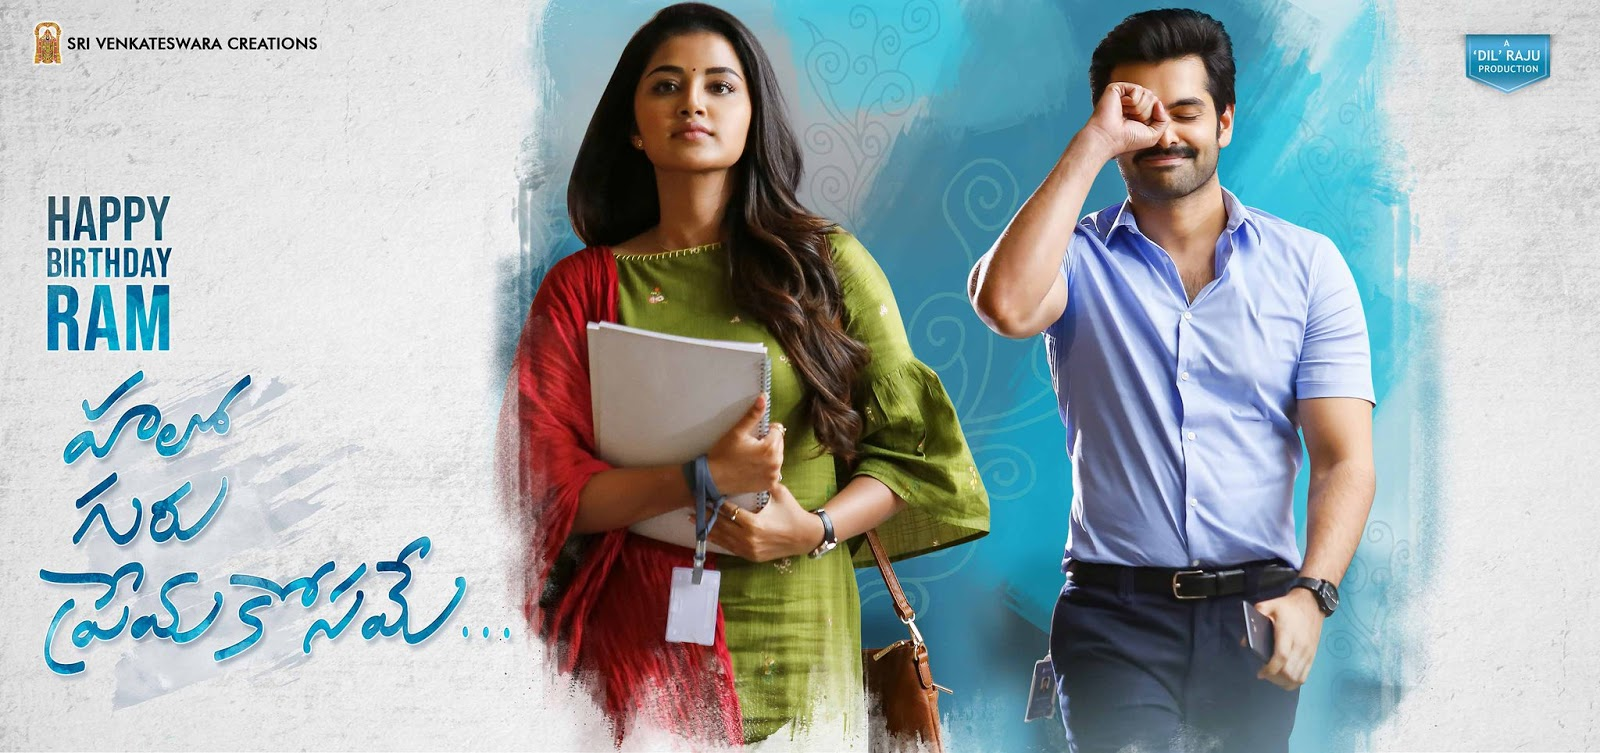 Ram, Anupama New telugu movie Hello Guru Prema Kosame Yudham poster, release date in 18 October 2018